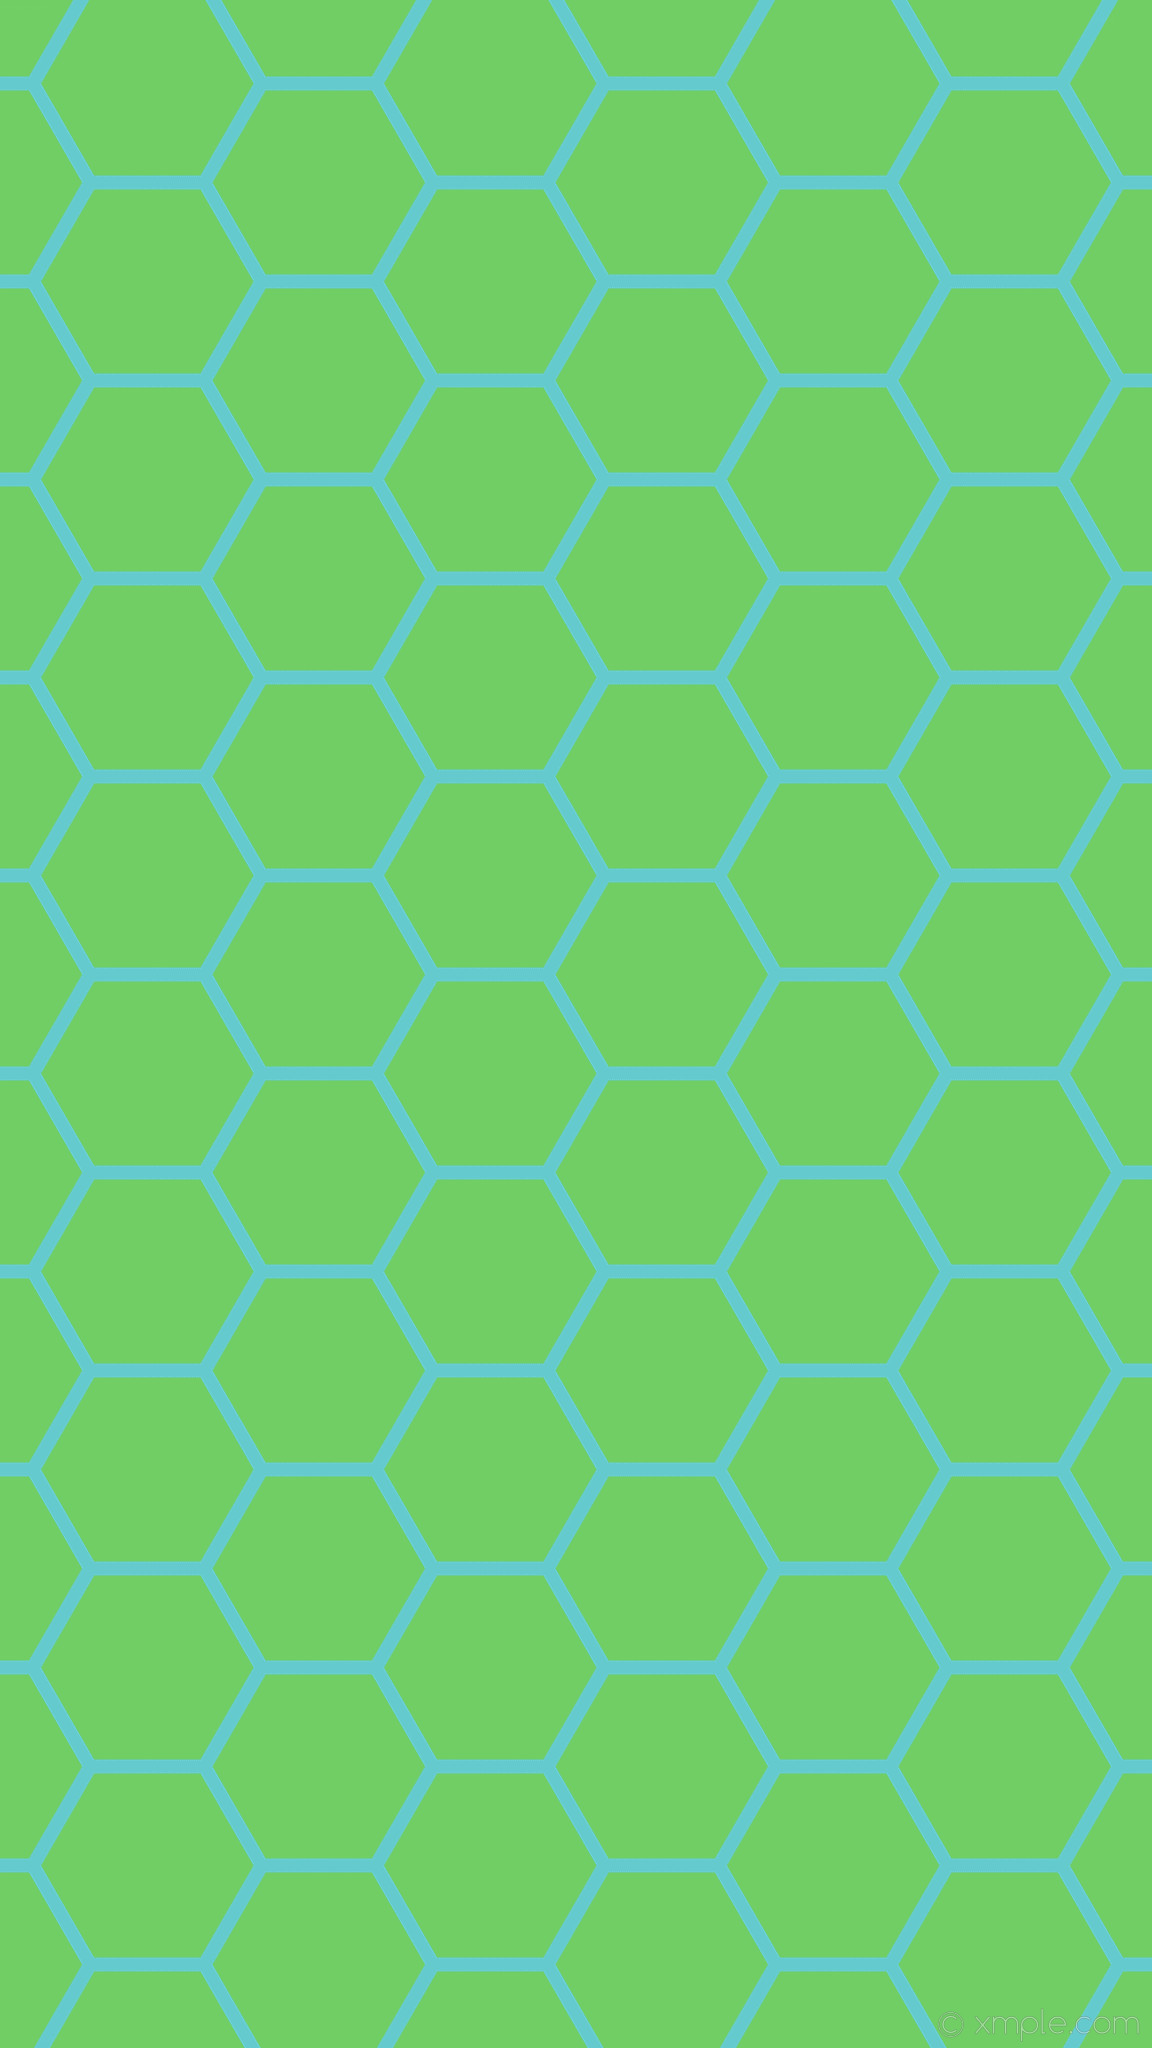 1152x2048 wallpaper green hexagon beehive cyan honeycomb #70ce65 #65cace diagonal 30°  14px 198px